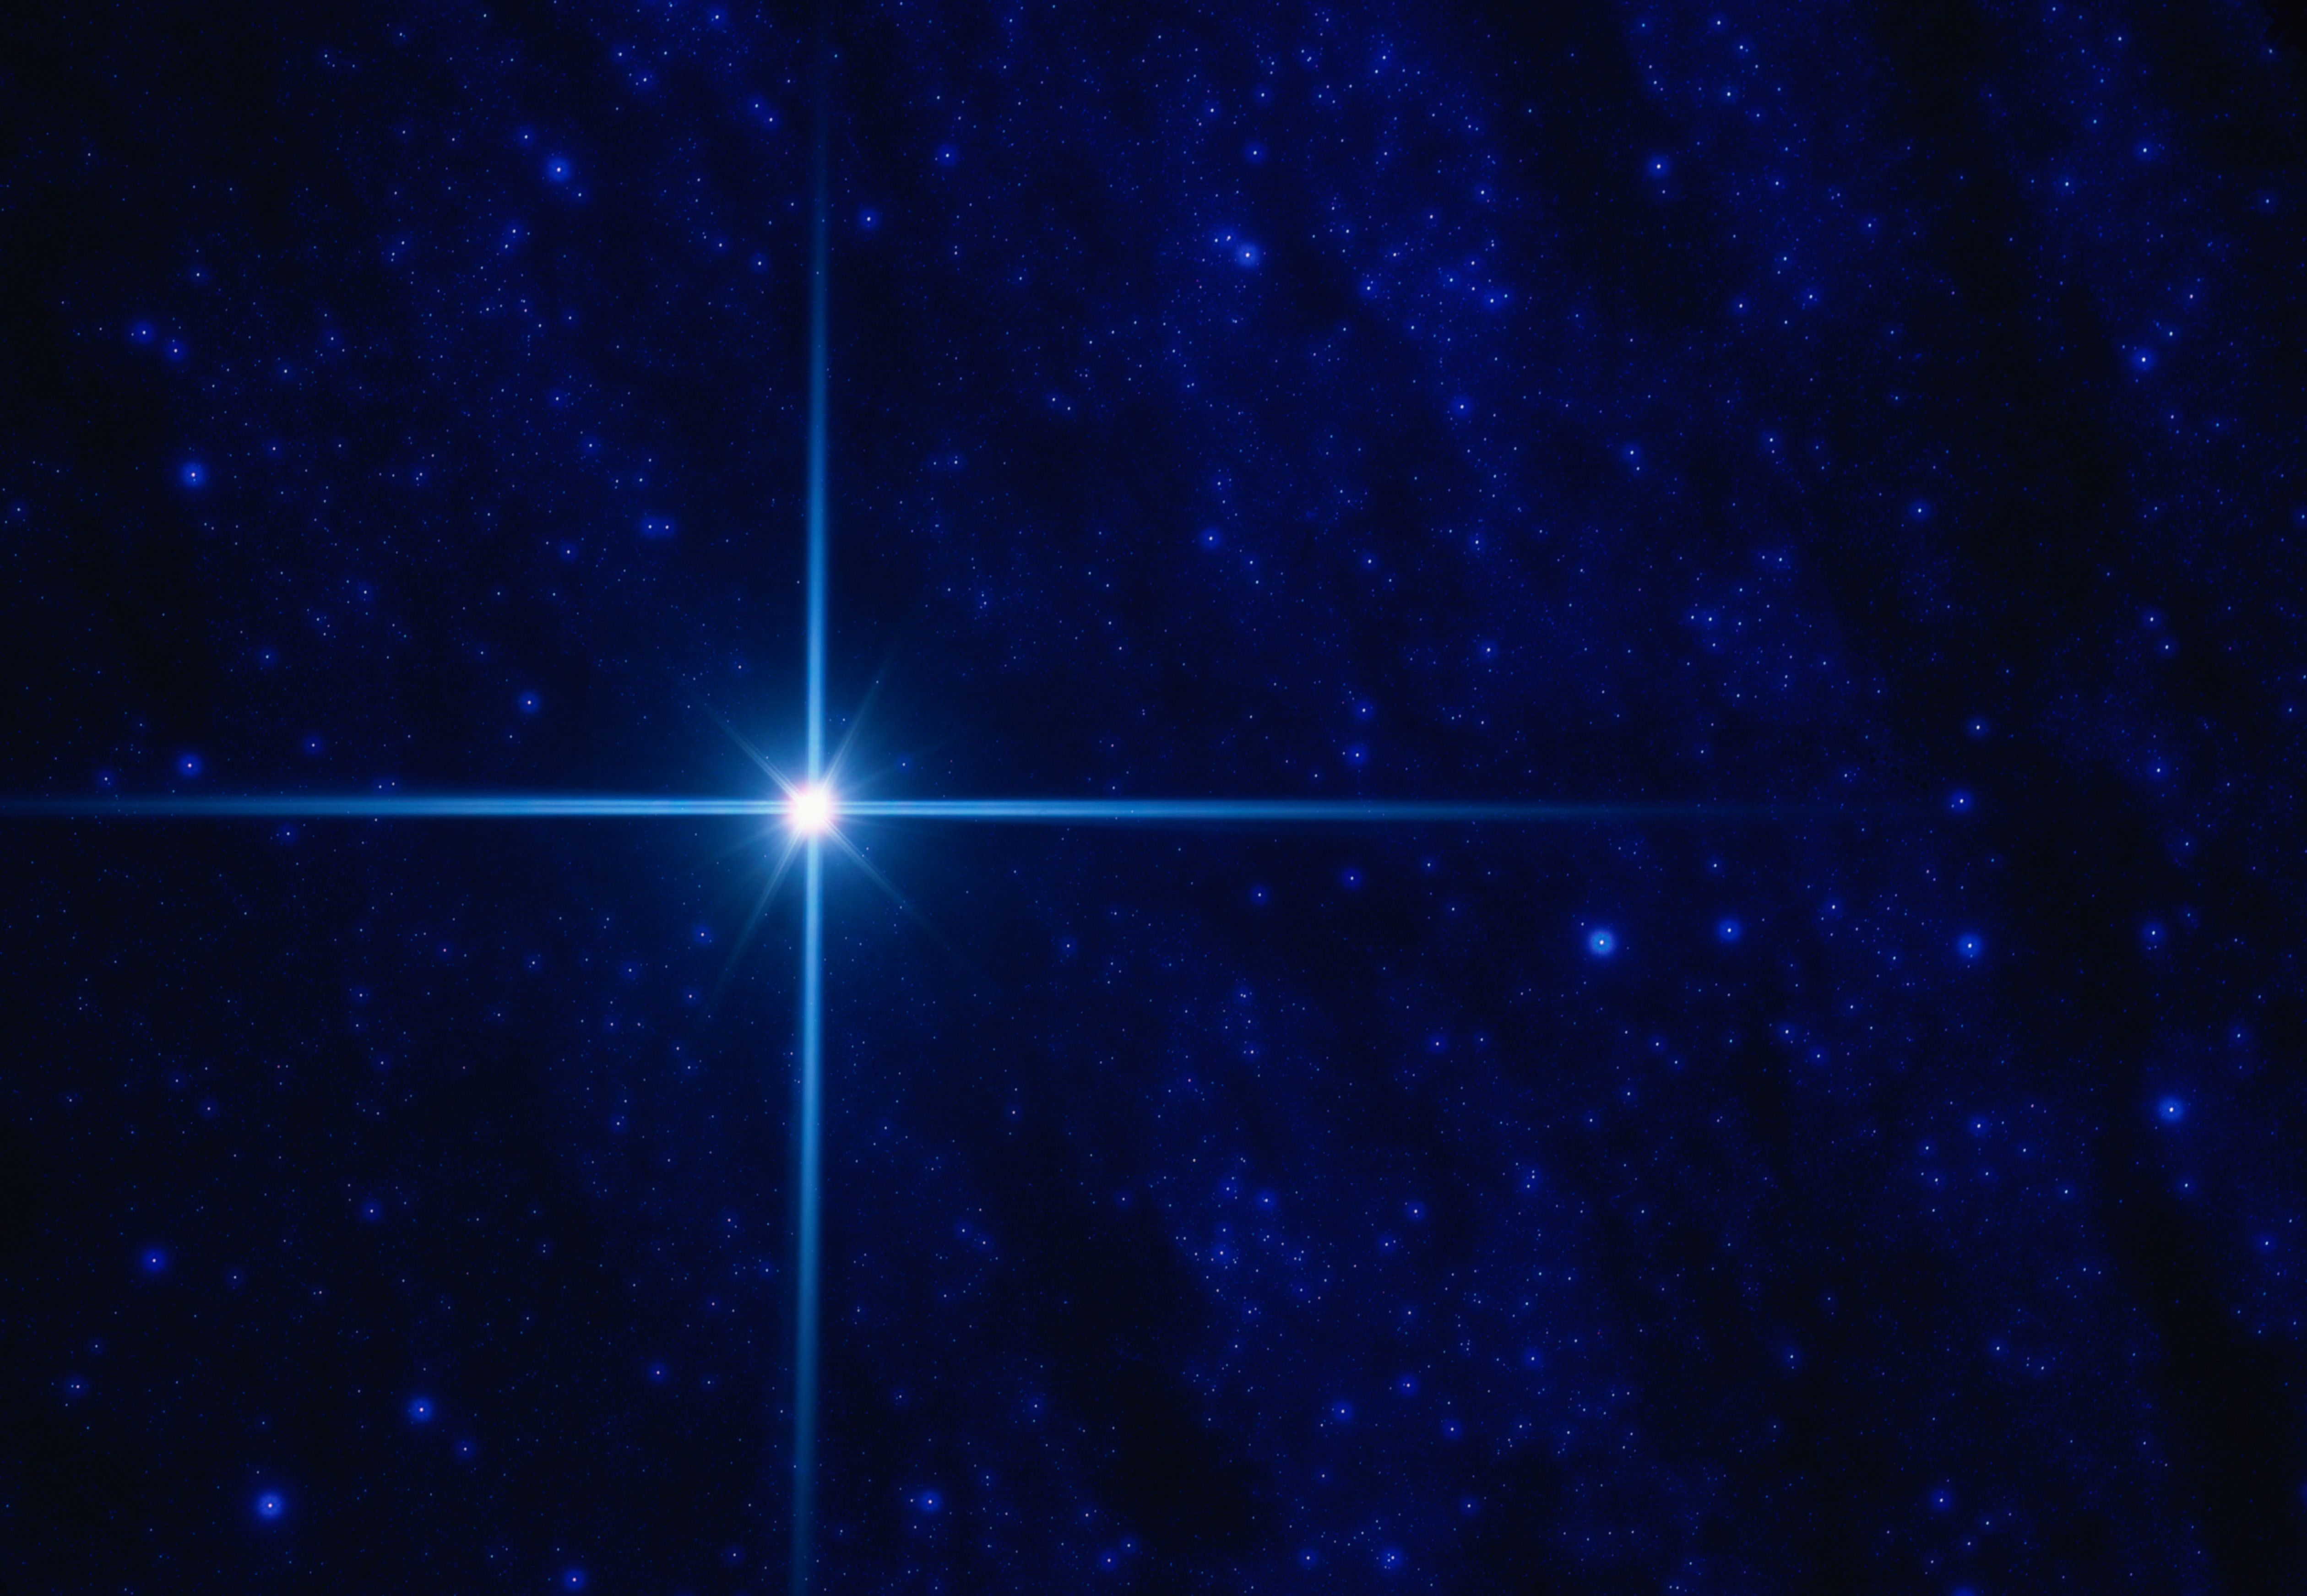 The brightest star in the night sky is Sirius.